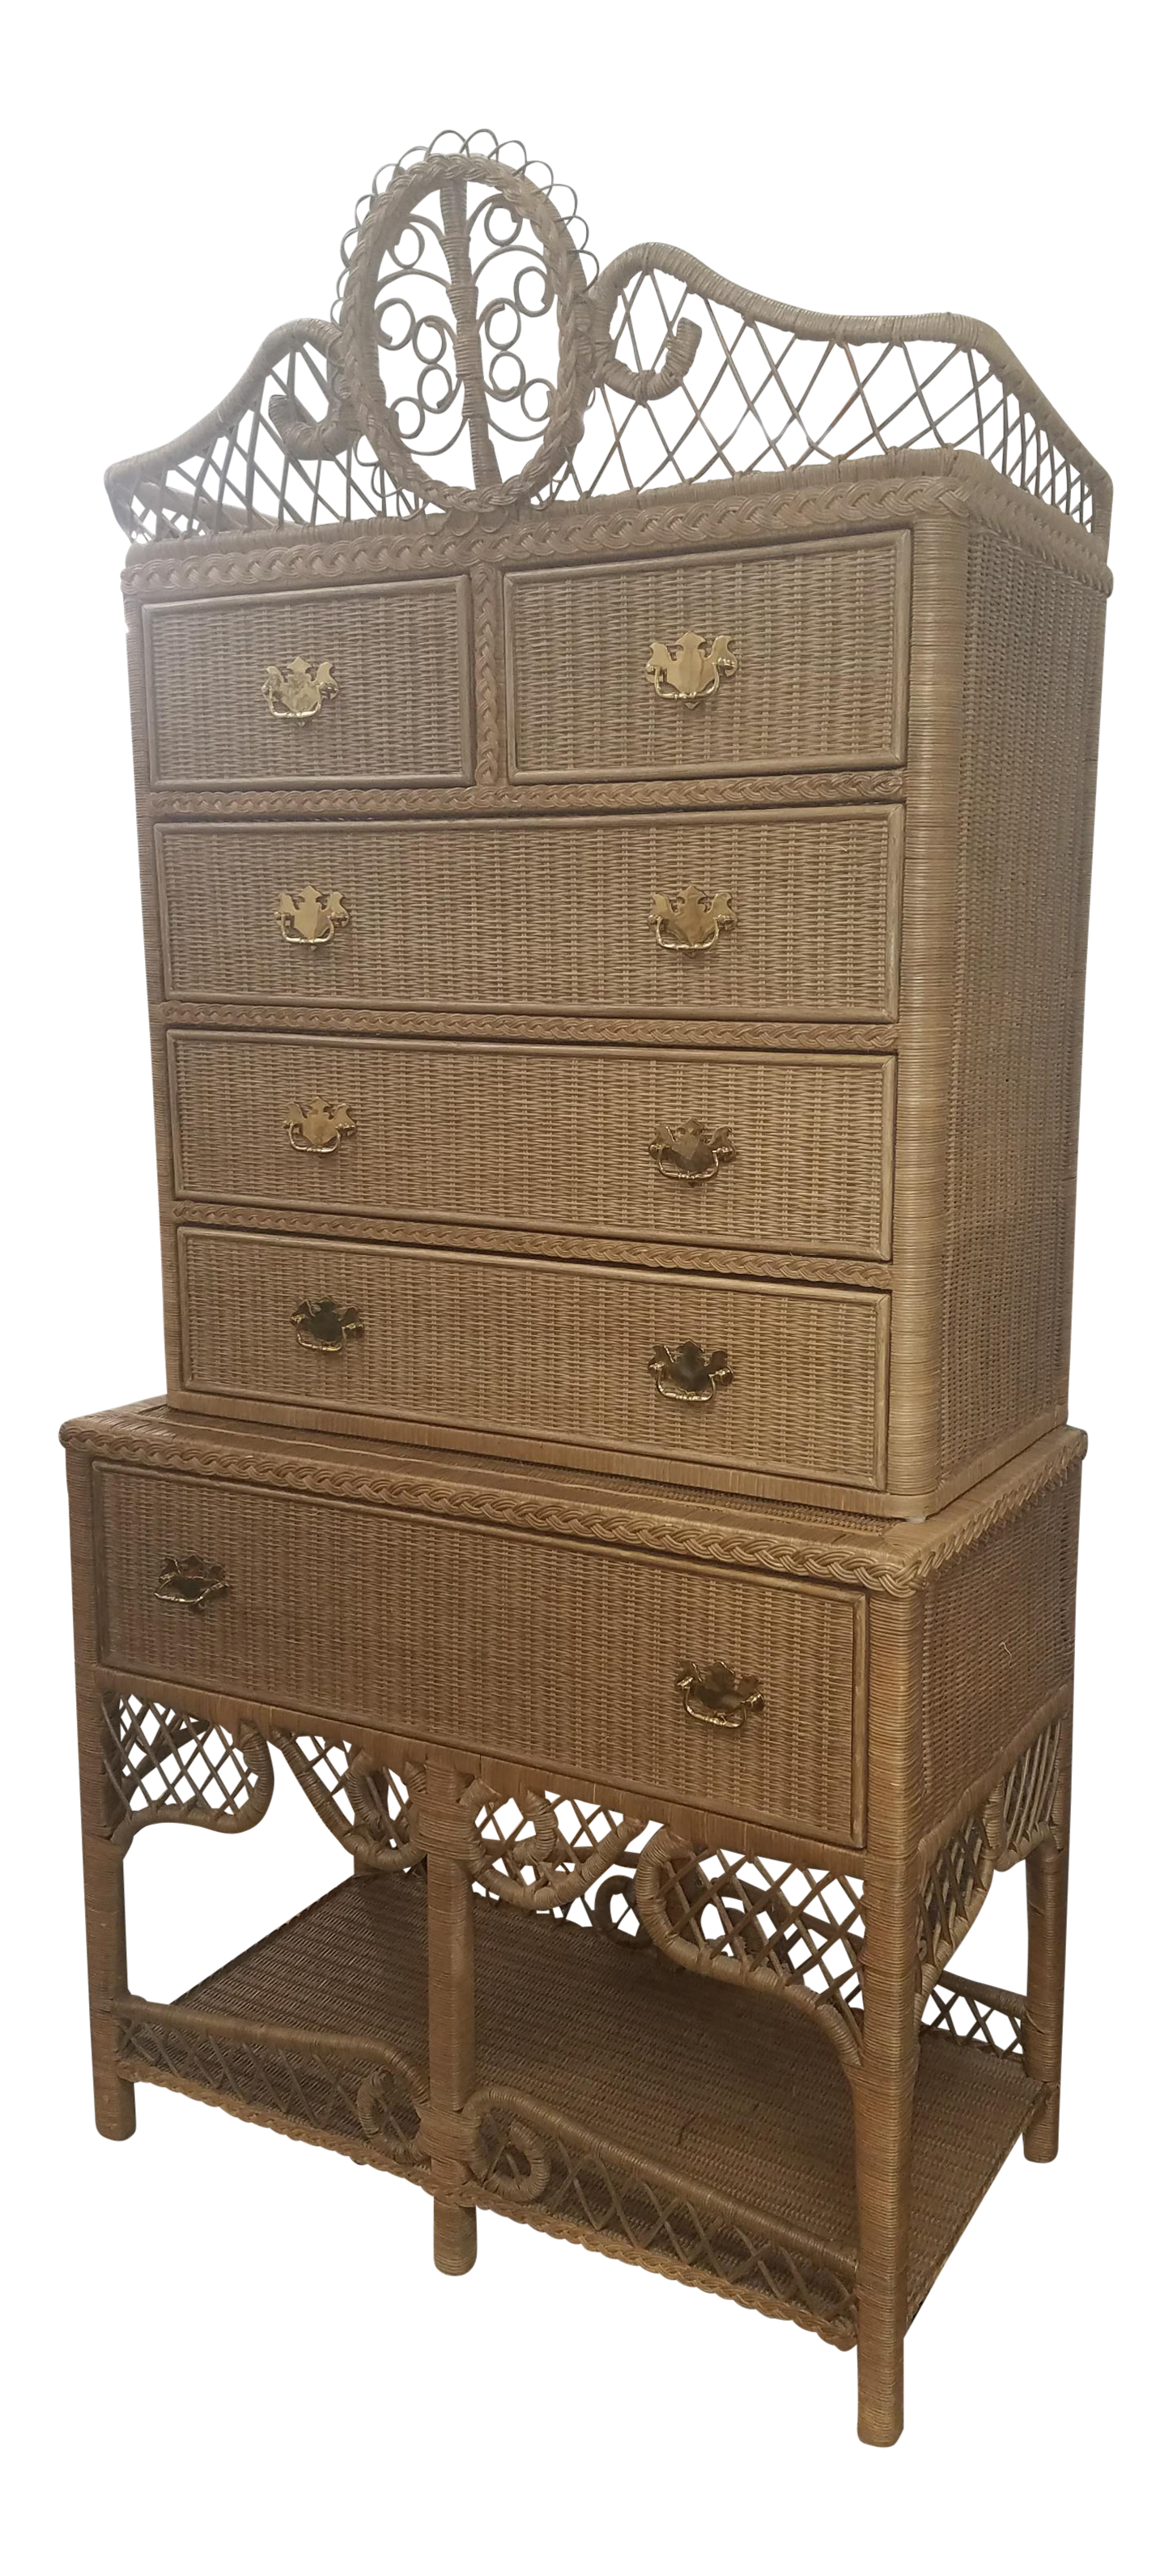 Merveilleux Vintage Ralph Lauren Safari Wicker Highboy On Chairish.com Wicker, Safari, Ralph  Lauren